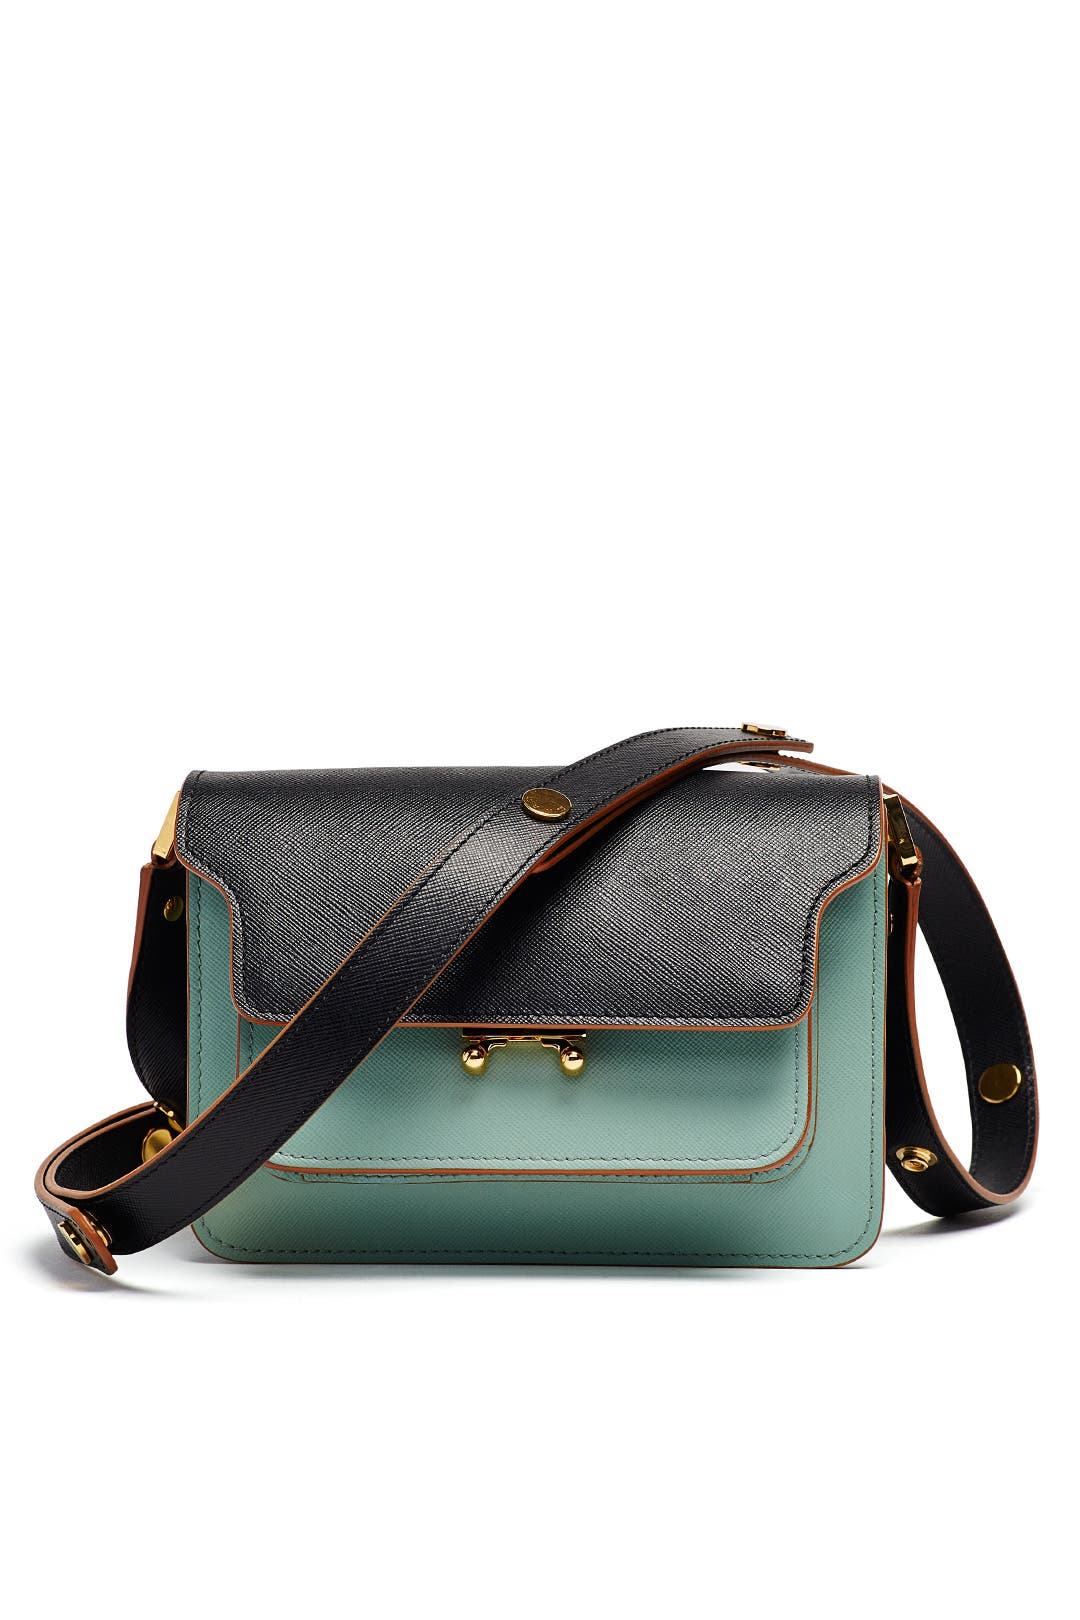 Marni Trunk Medium Color Block Leather Shoulder Bag in 2020